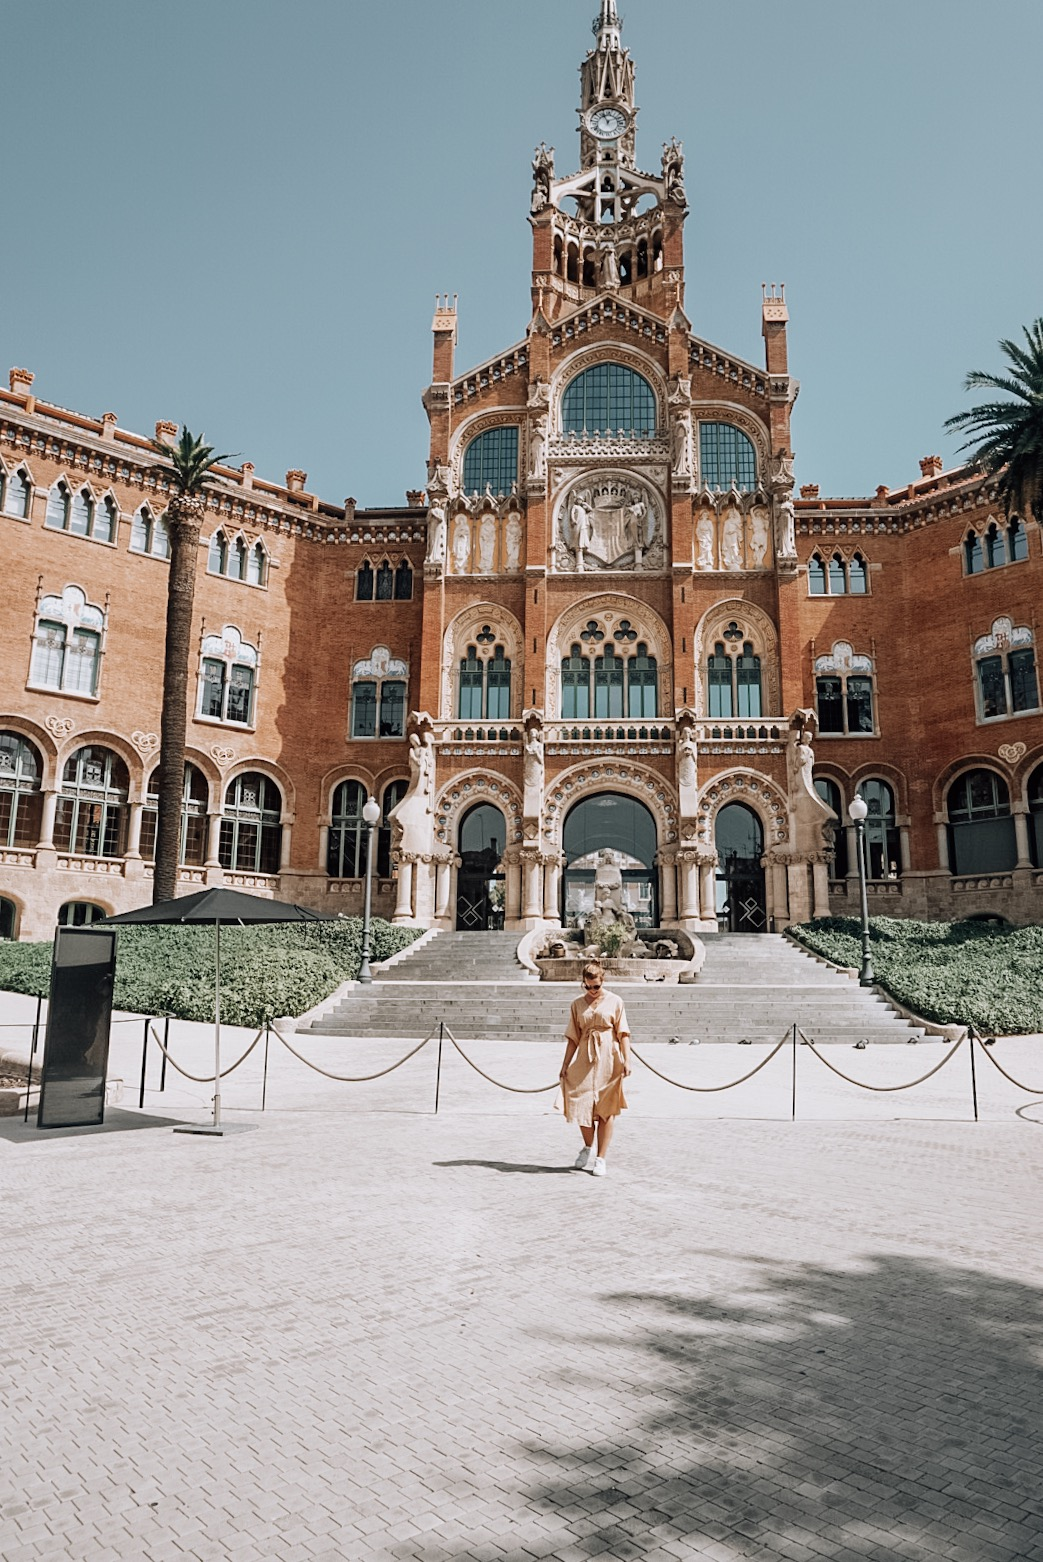 sant pau, old hospital in barcelona, instagram, picture, photography, city